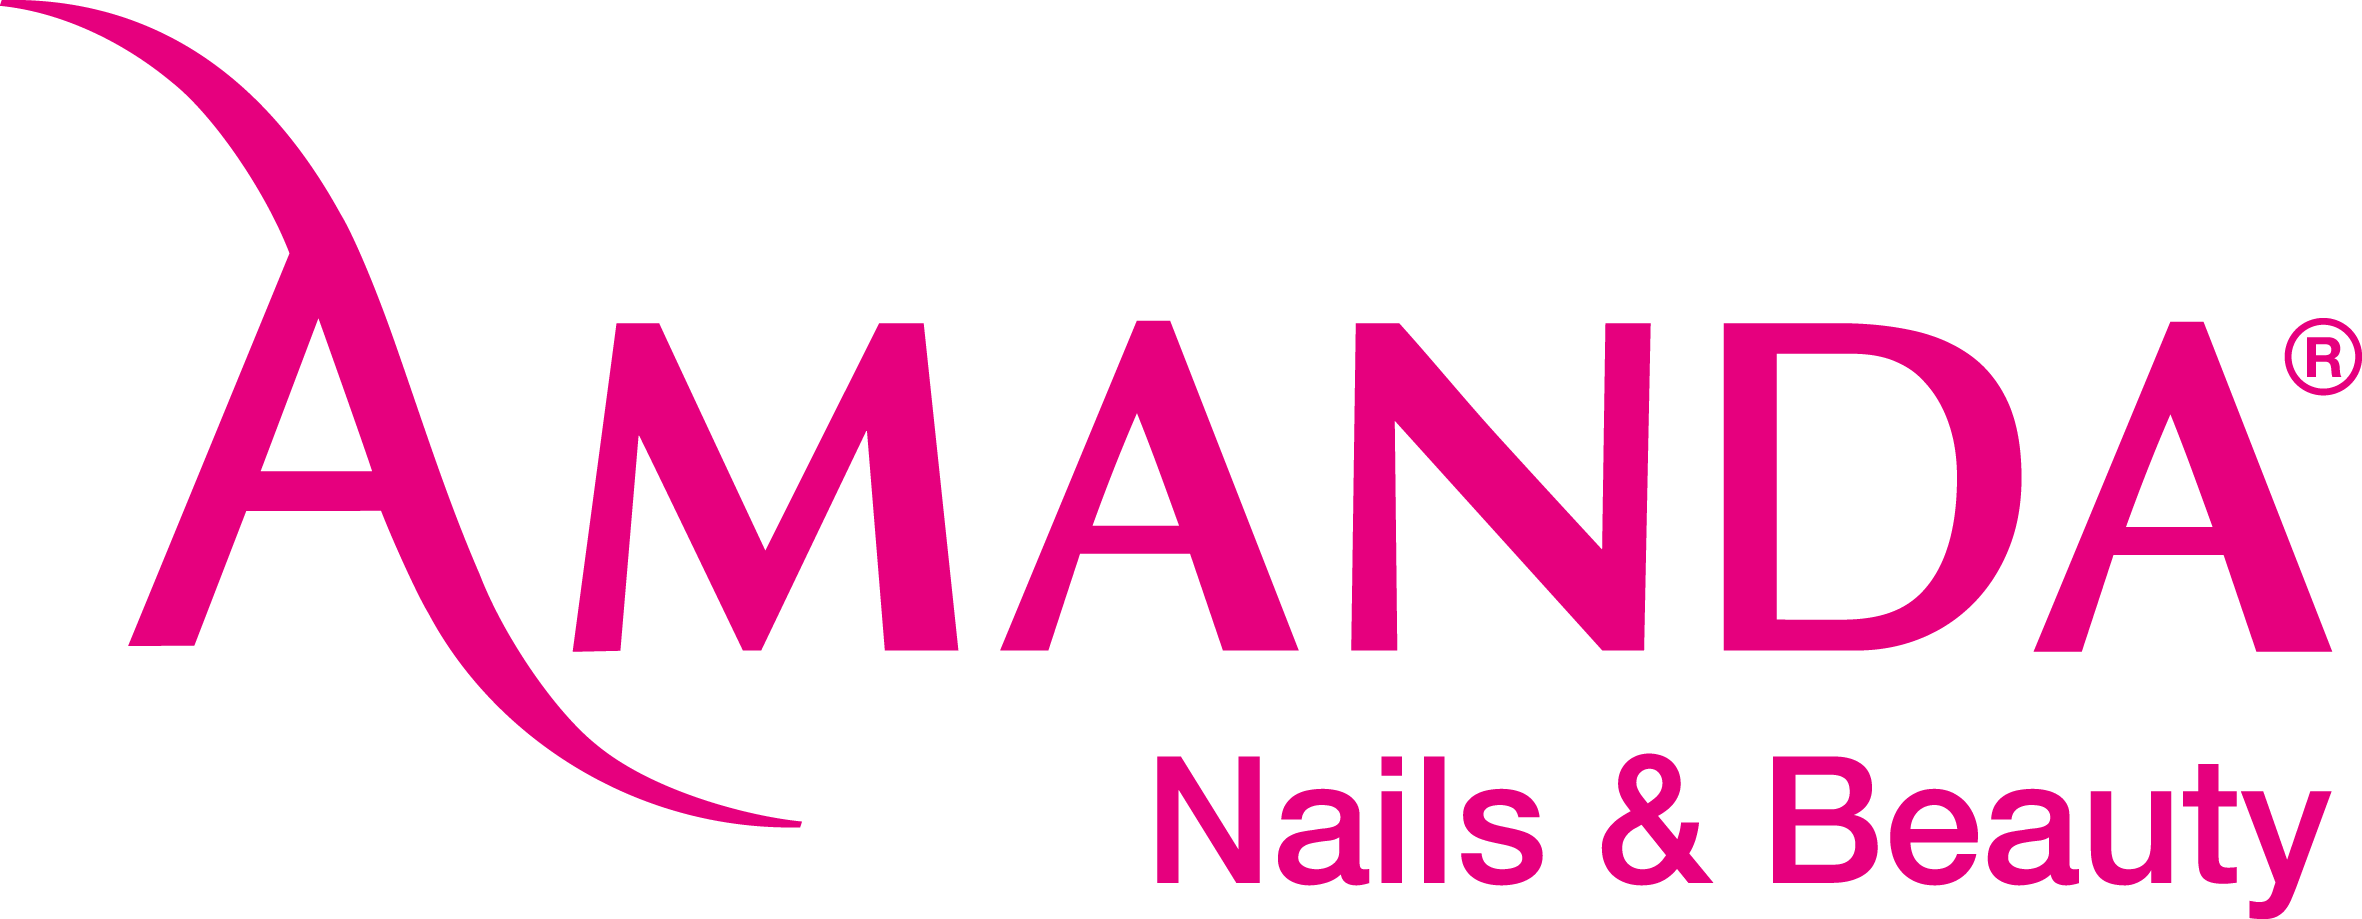 Amanda Nails & Beauty GmbH